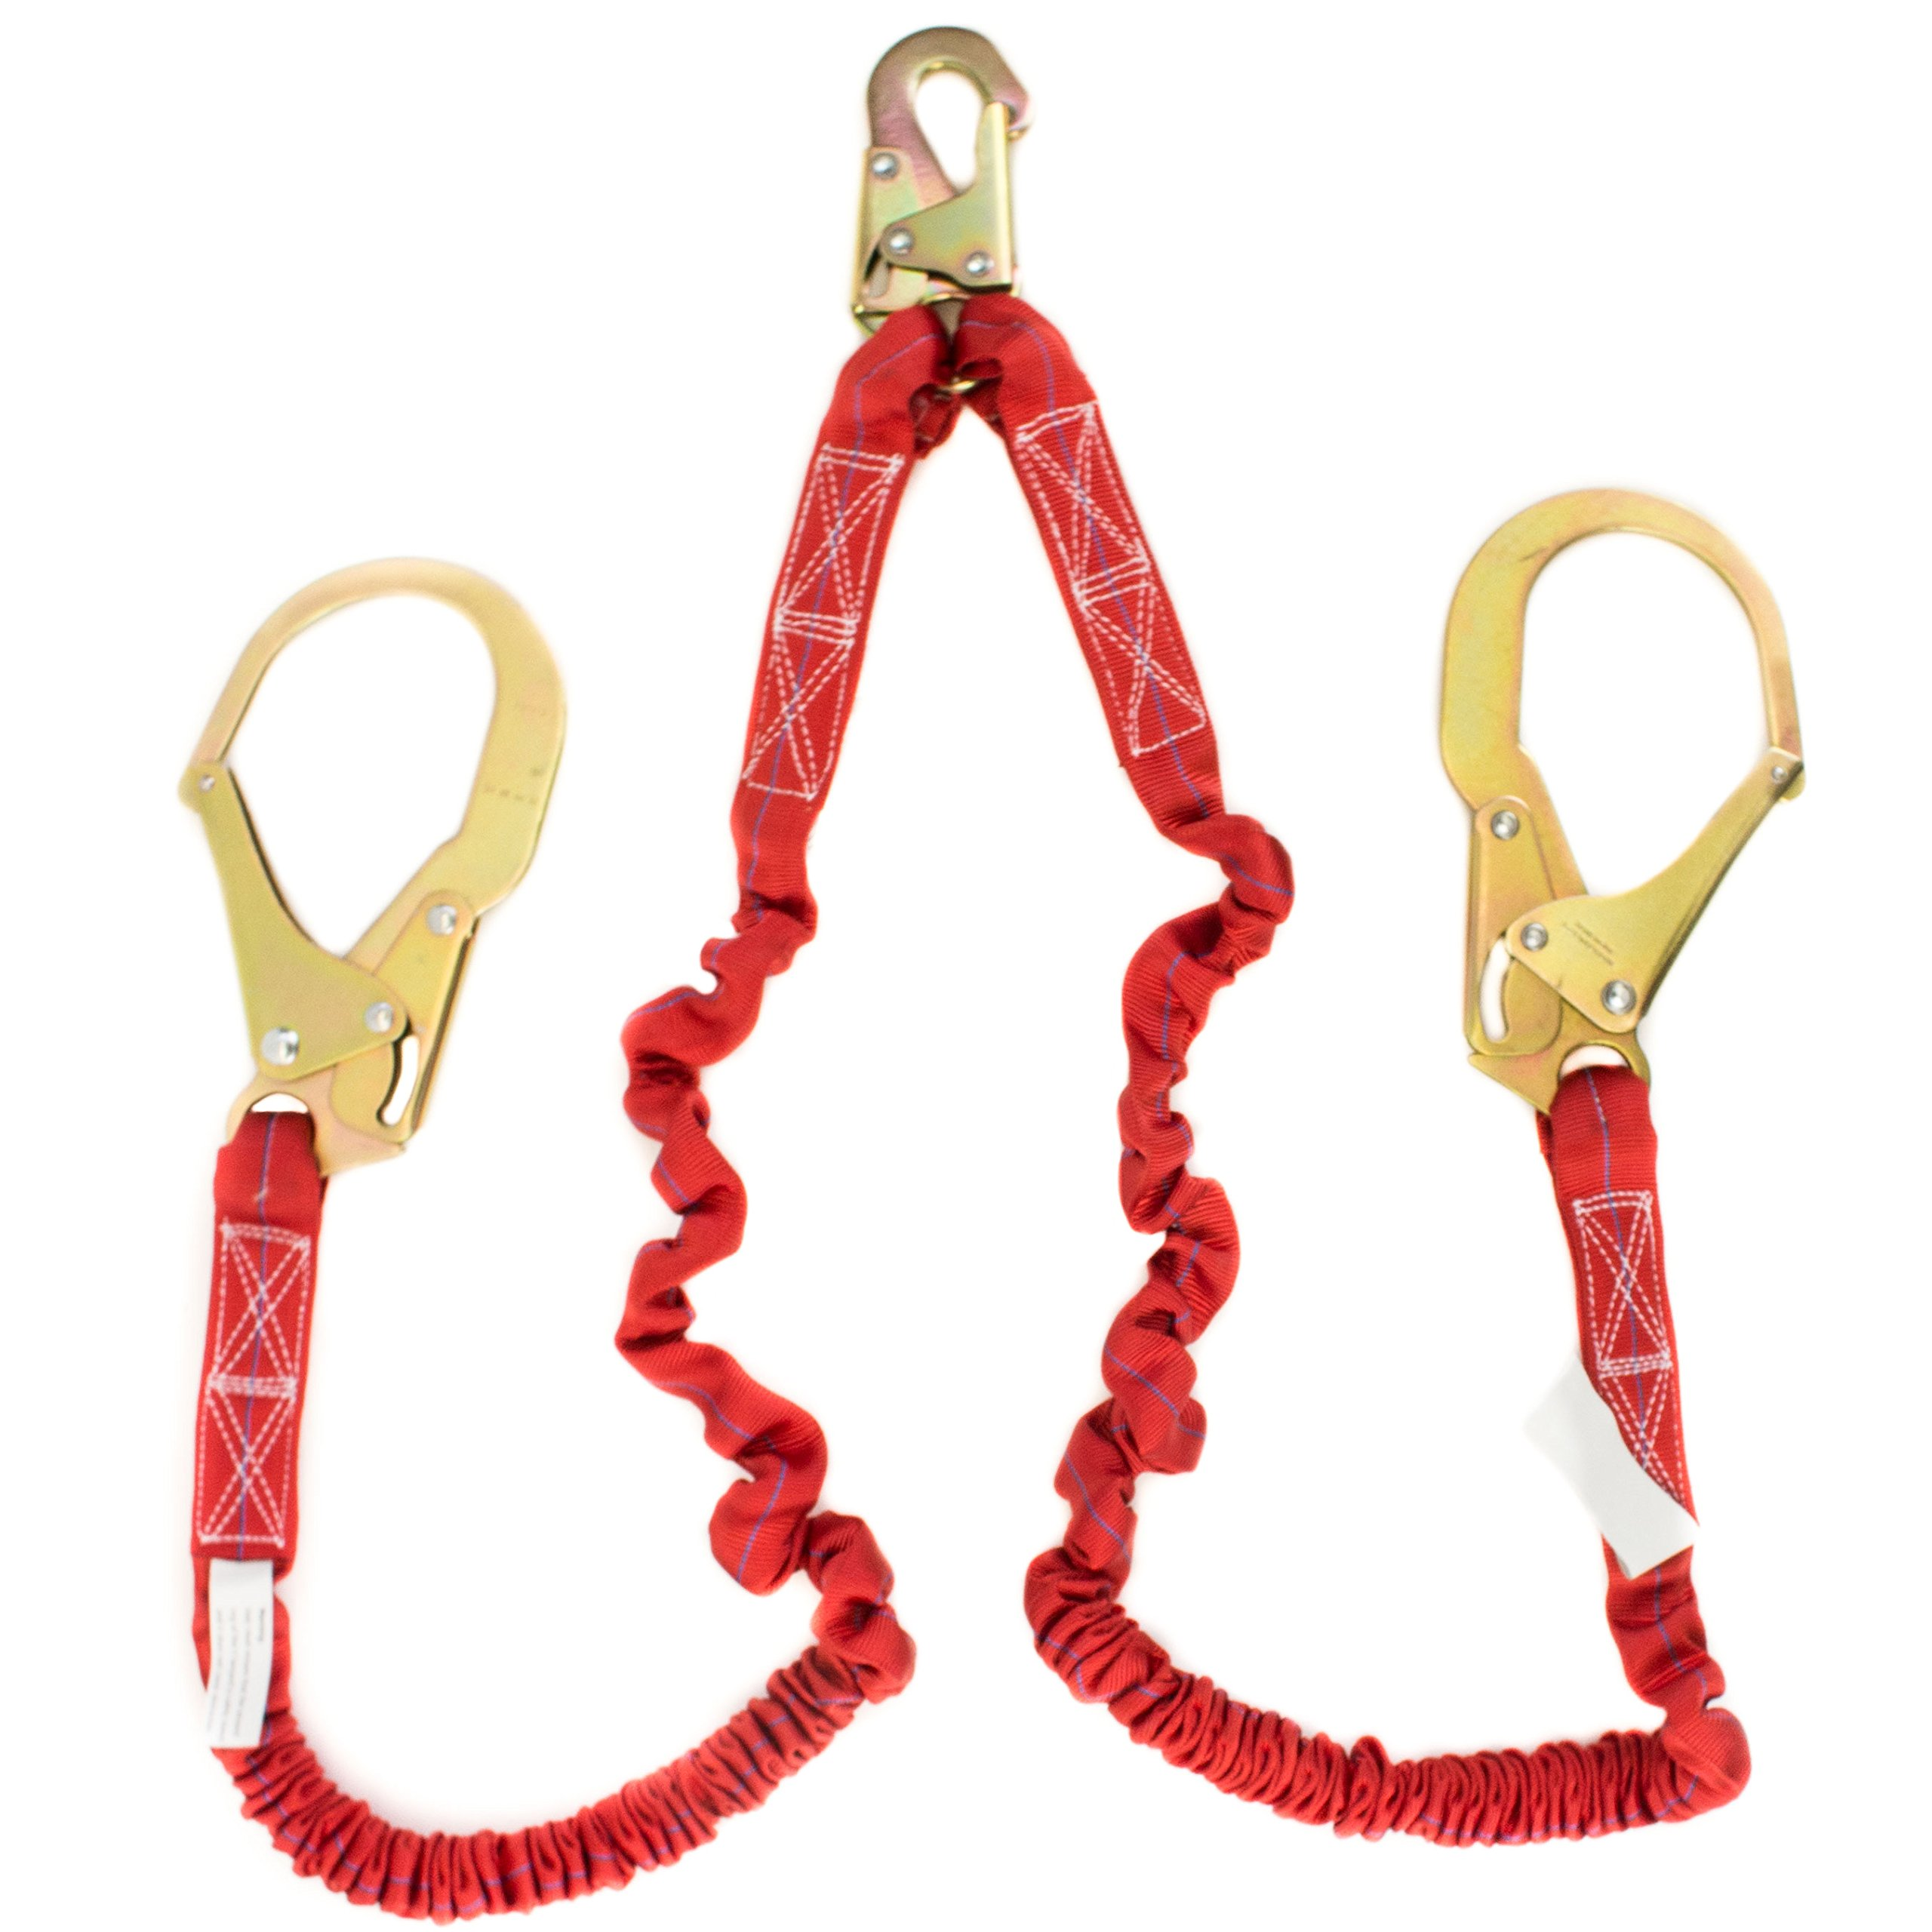 Spidergard SPL-S201 6-Feet Double Leg Internal Shock Absorbing Lanyard with Two Rebar Hooks, Red